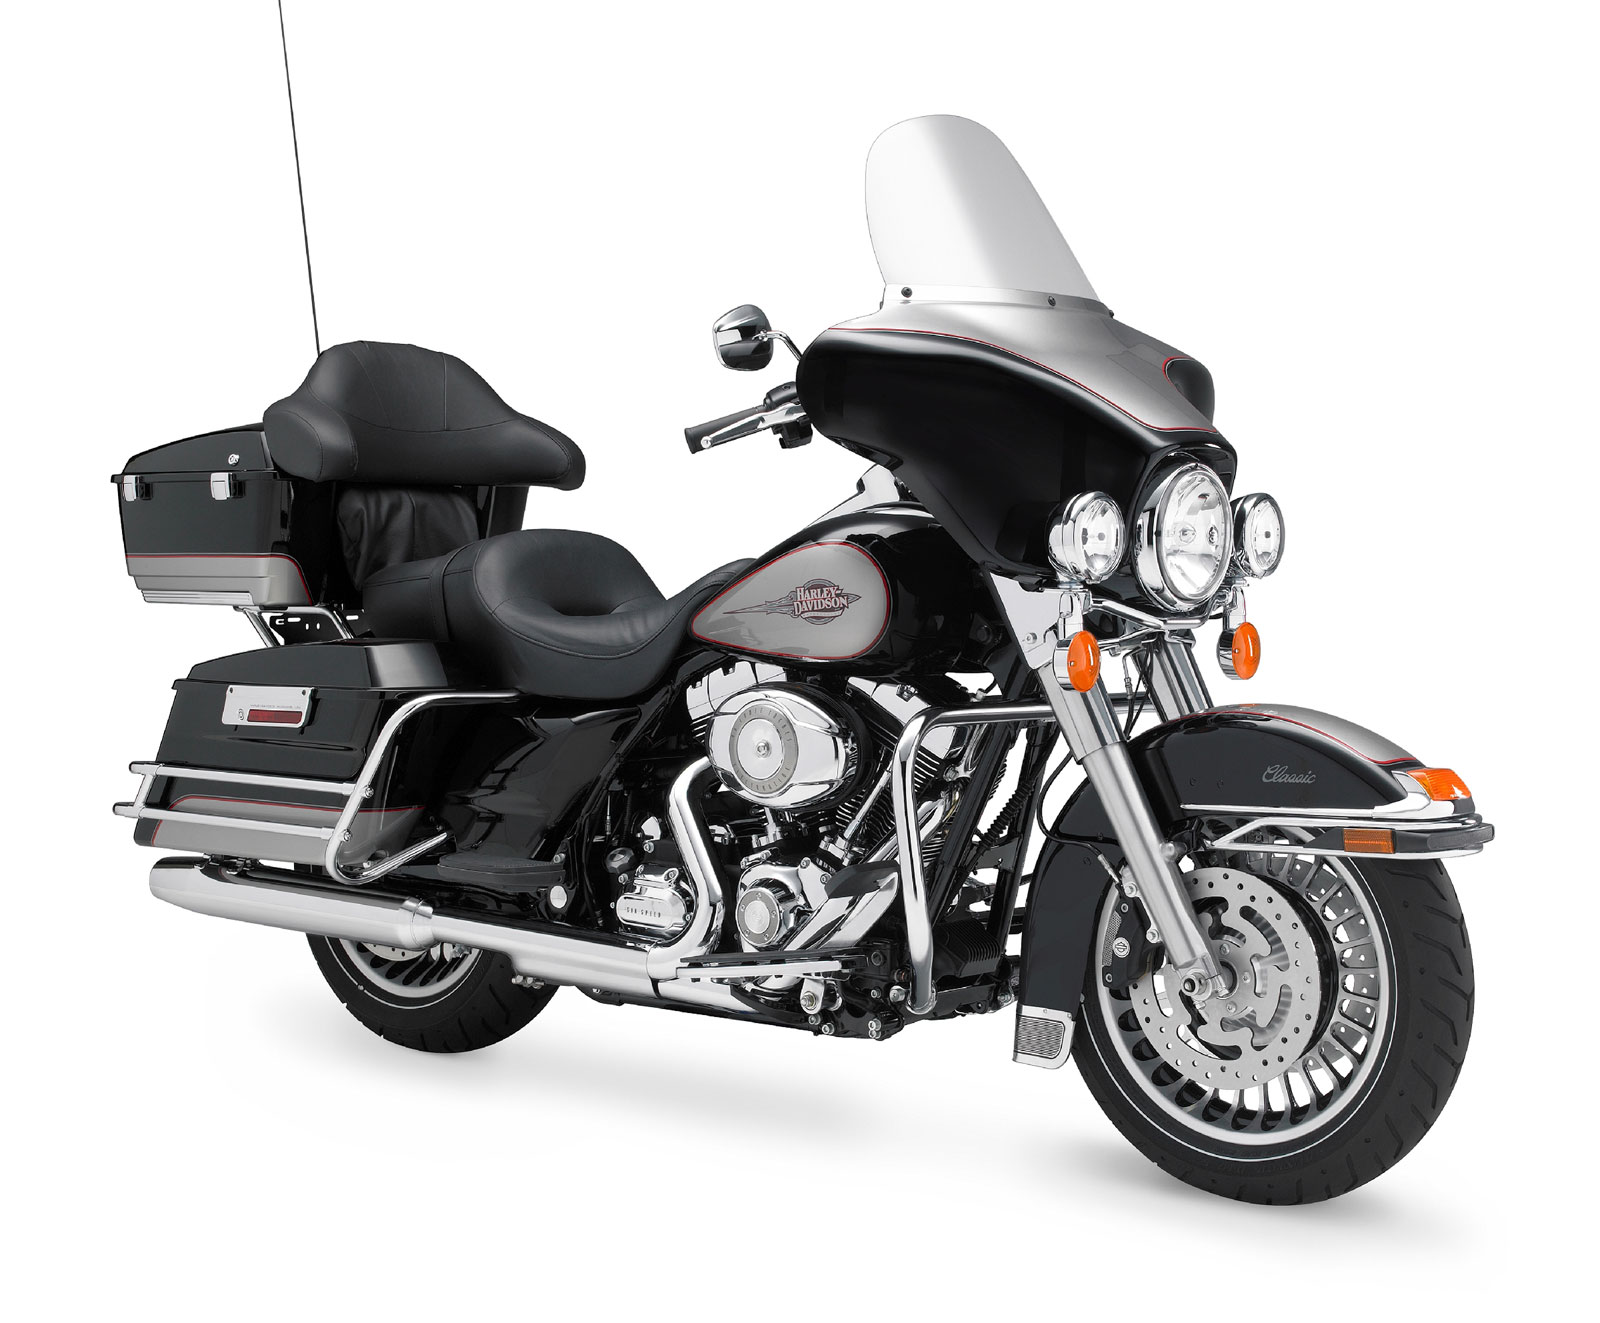 Harley-Davidson FLHTC Electra Glide Classic 2000 pics #16770